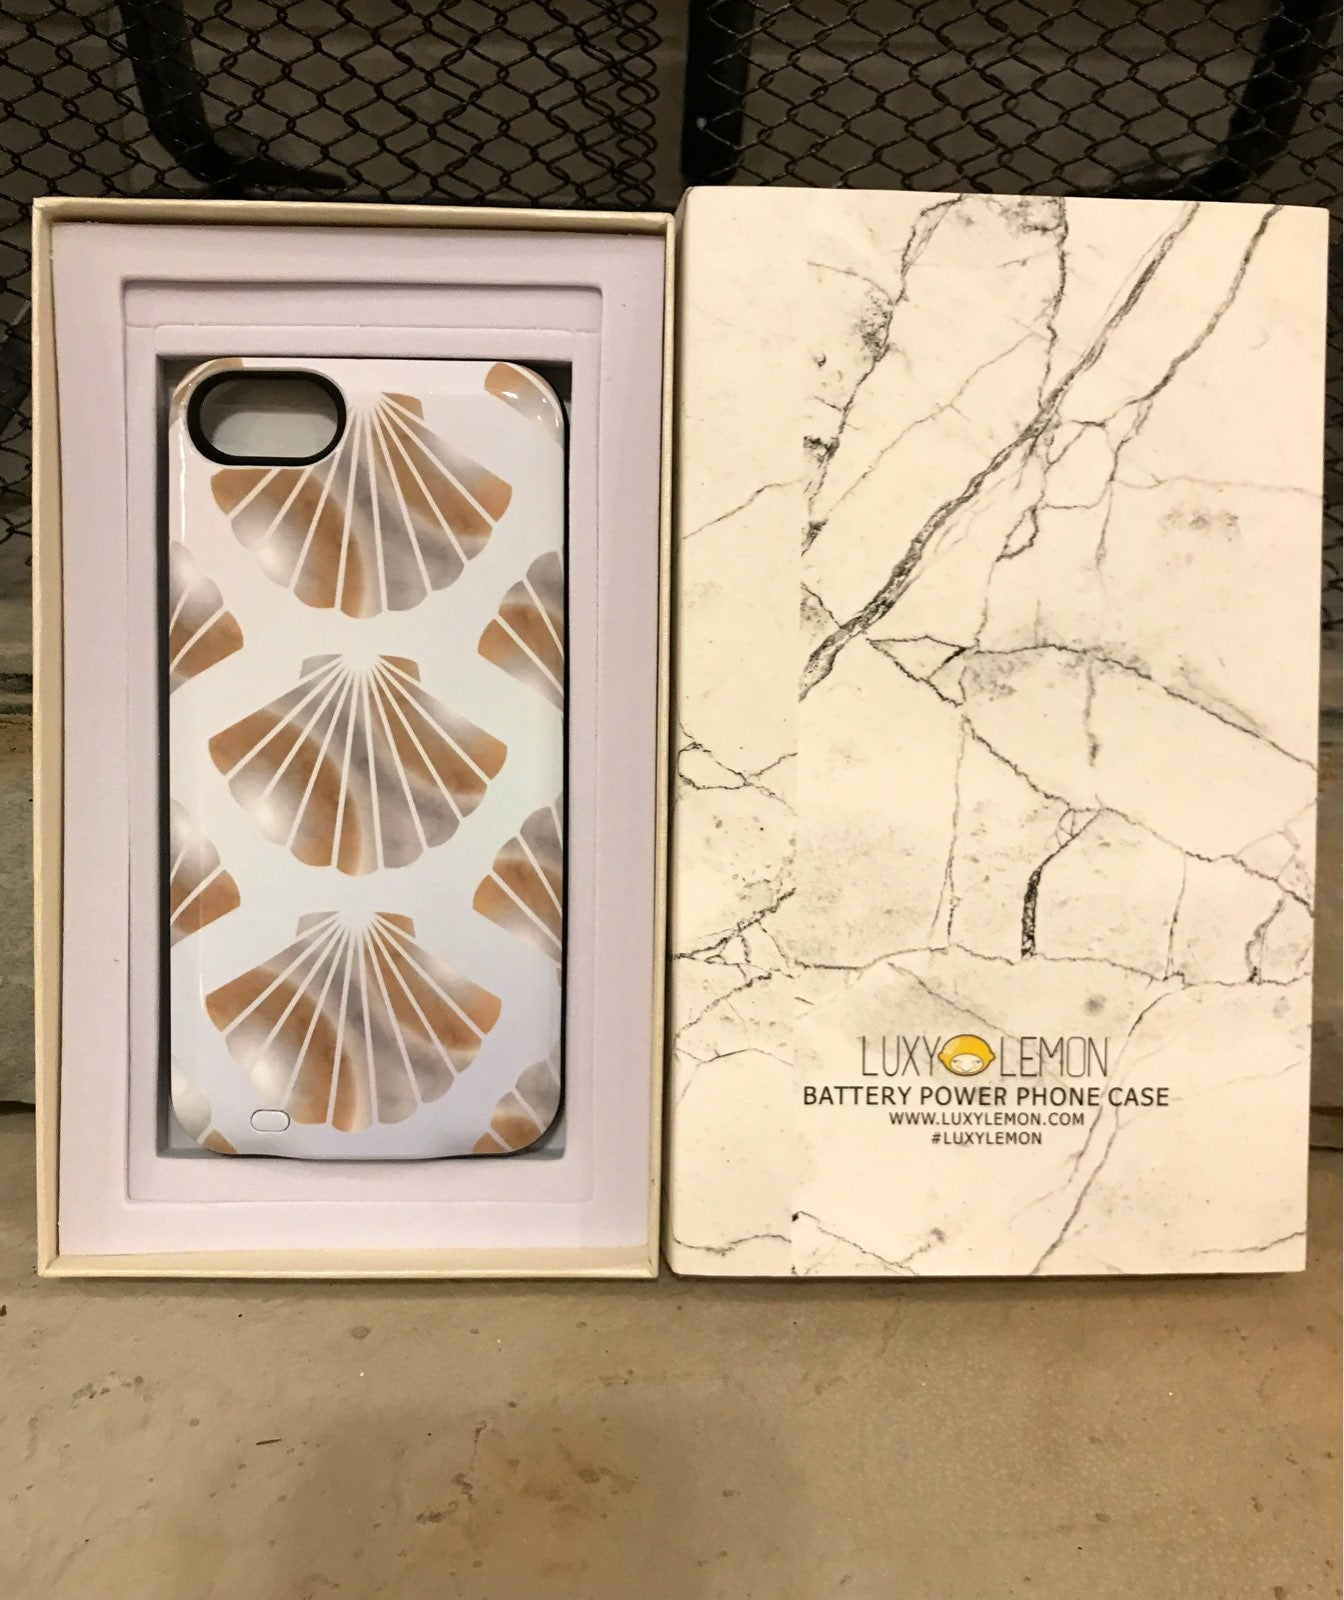 Luxy lemon battery case iphone 7, 8, and